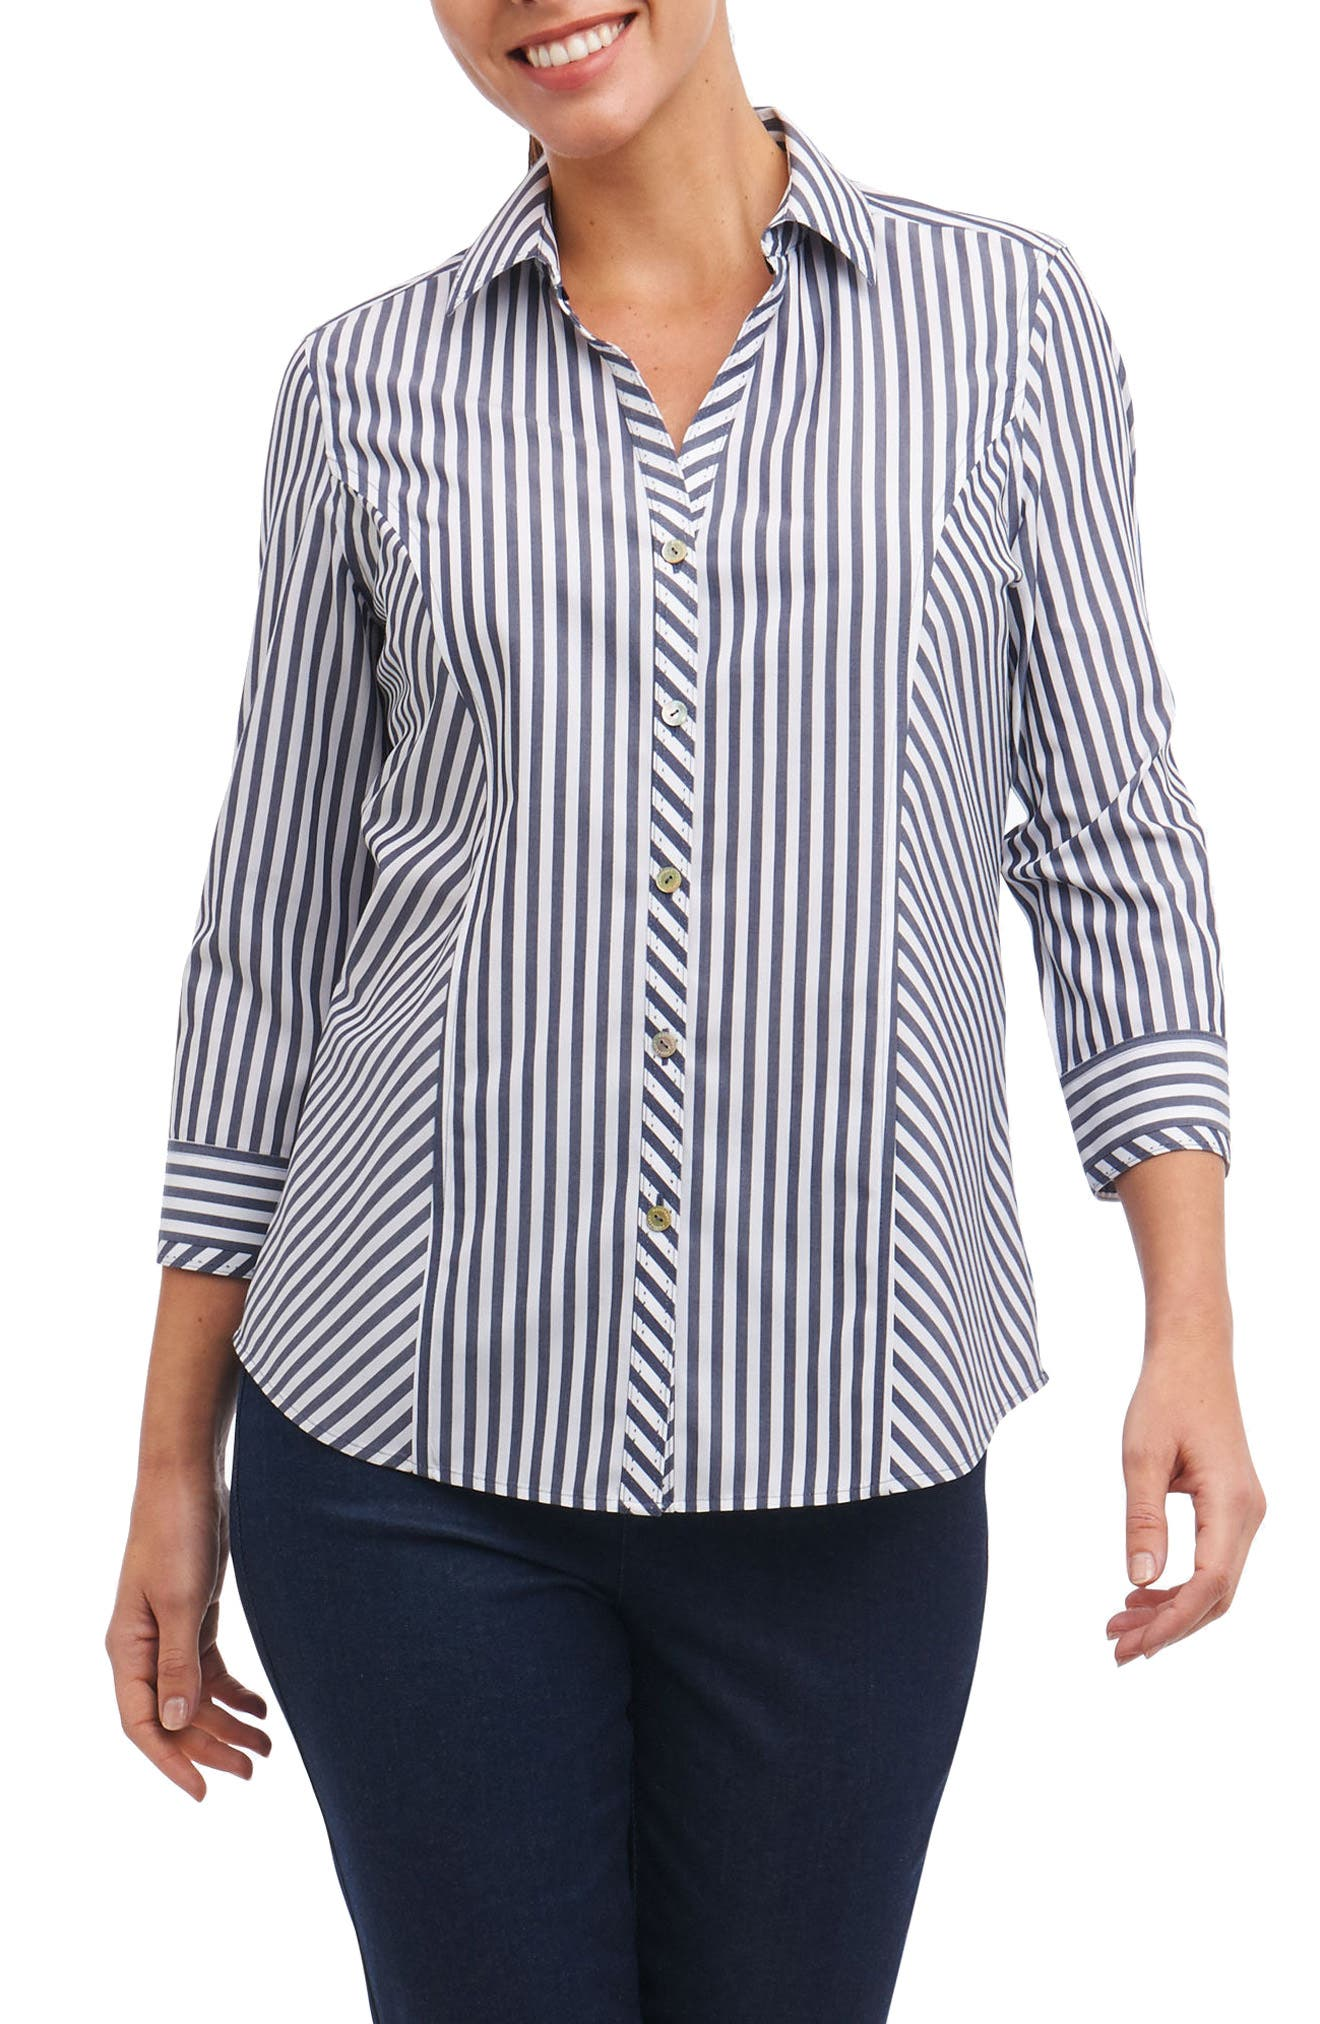 Foxcroft Hope Preppy Stripe Cotton Shirt (Regular & Petite)